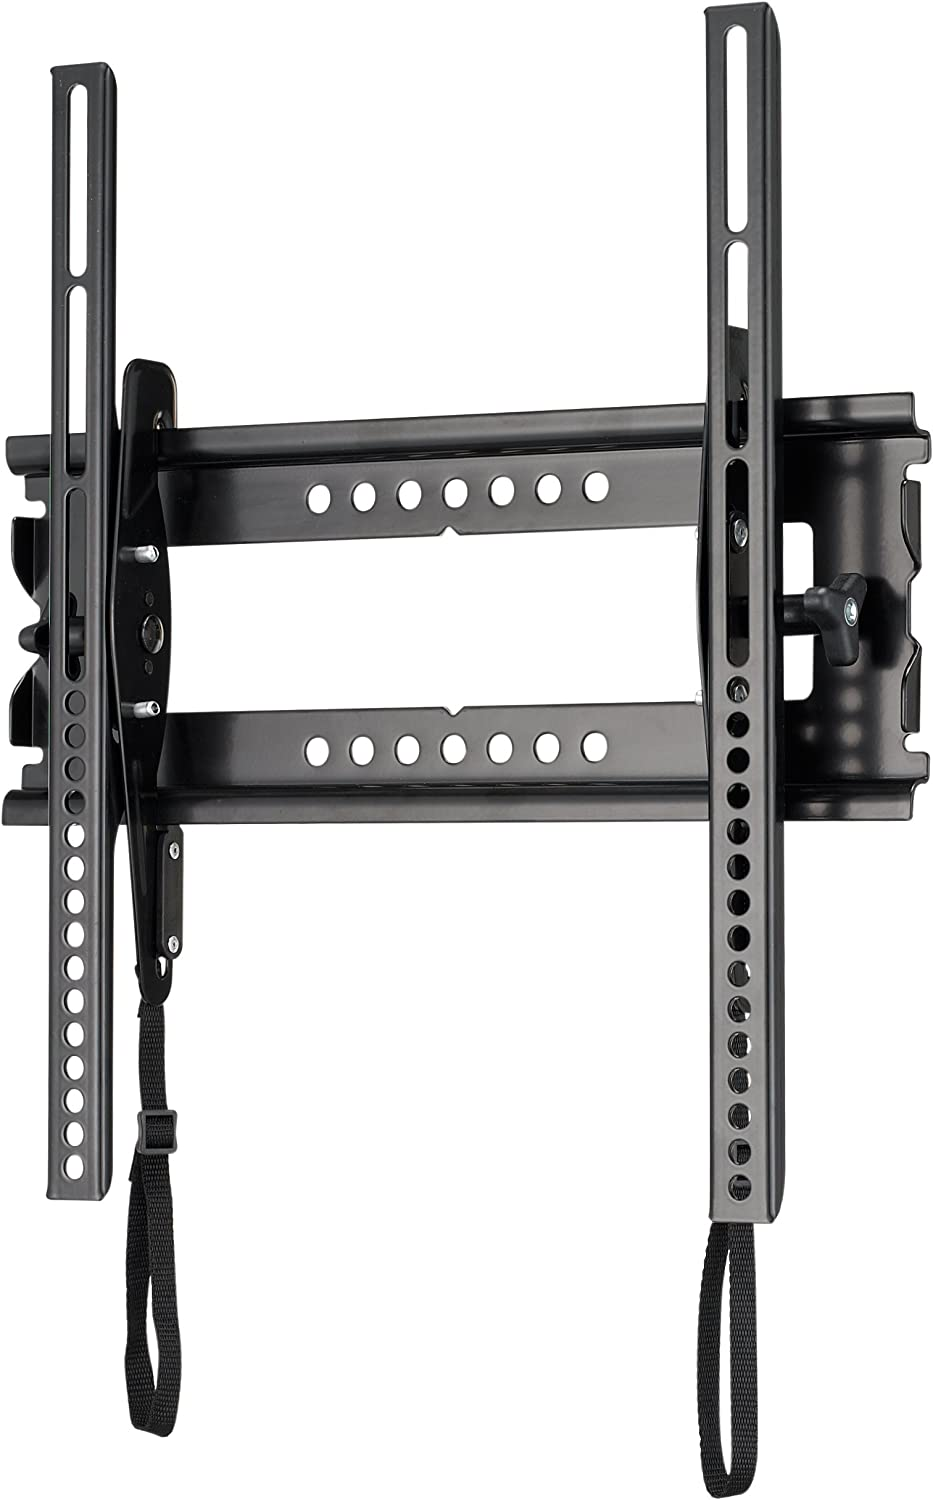 Sanus Tilt TV Wall Mount for 26 -47  LED, LCD and Plasma Flat Screen TVs and Monitors - MMT16B-B1